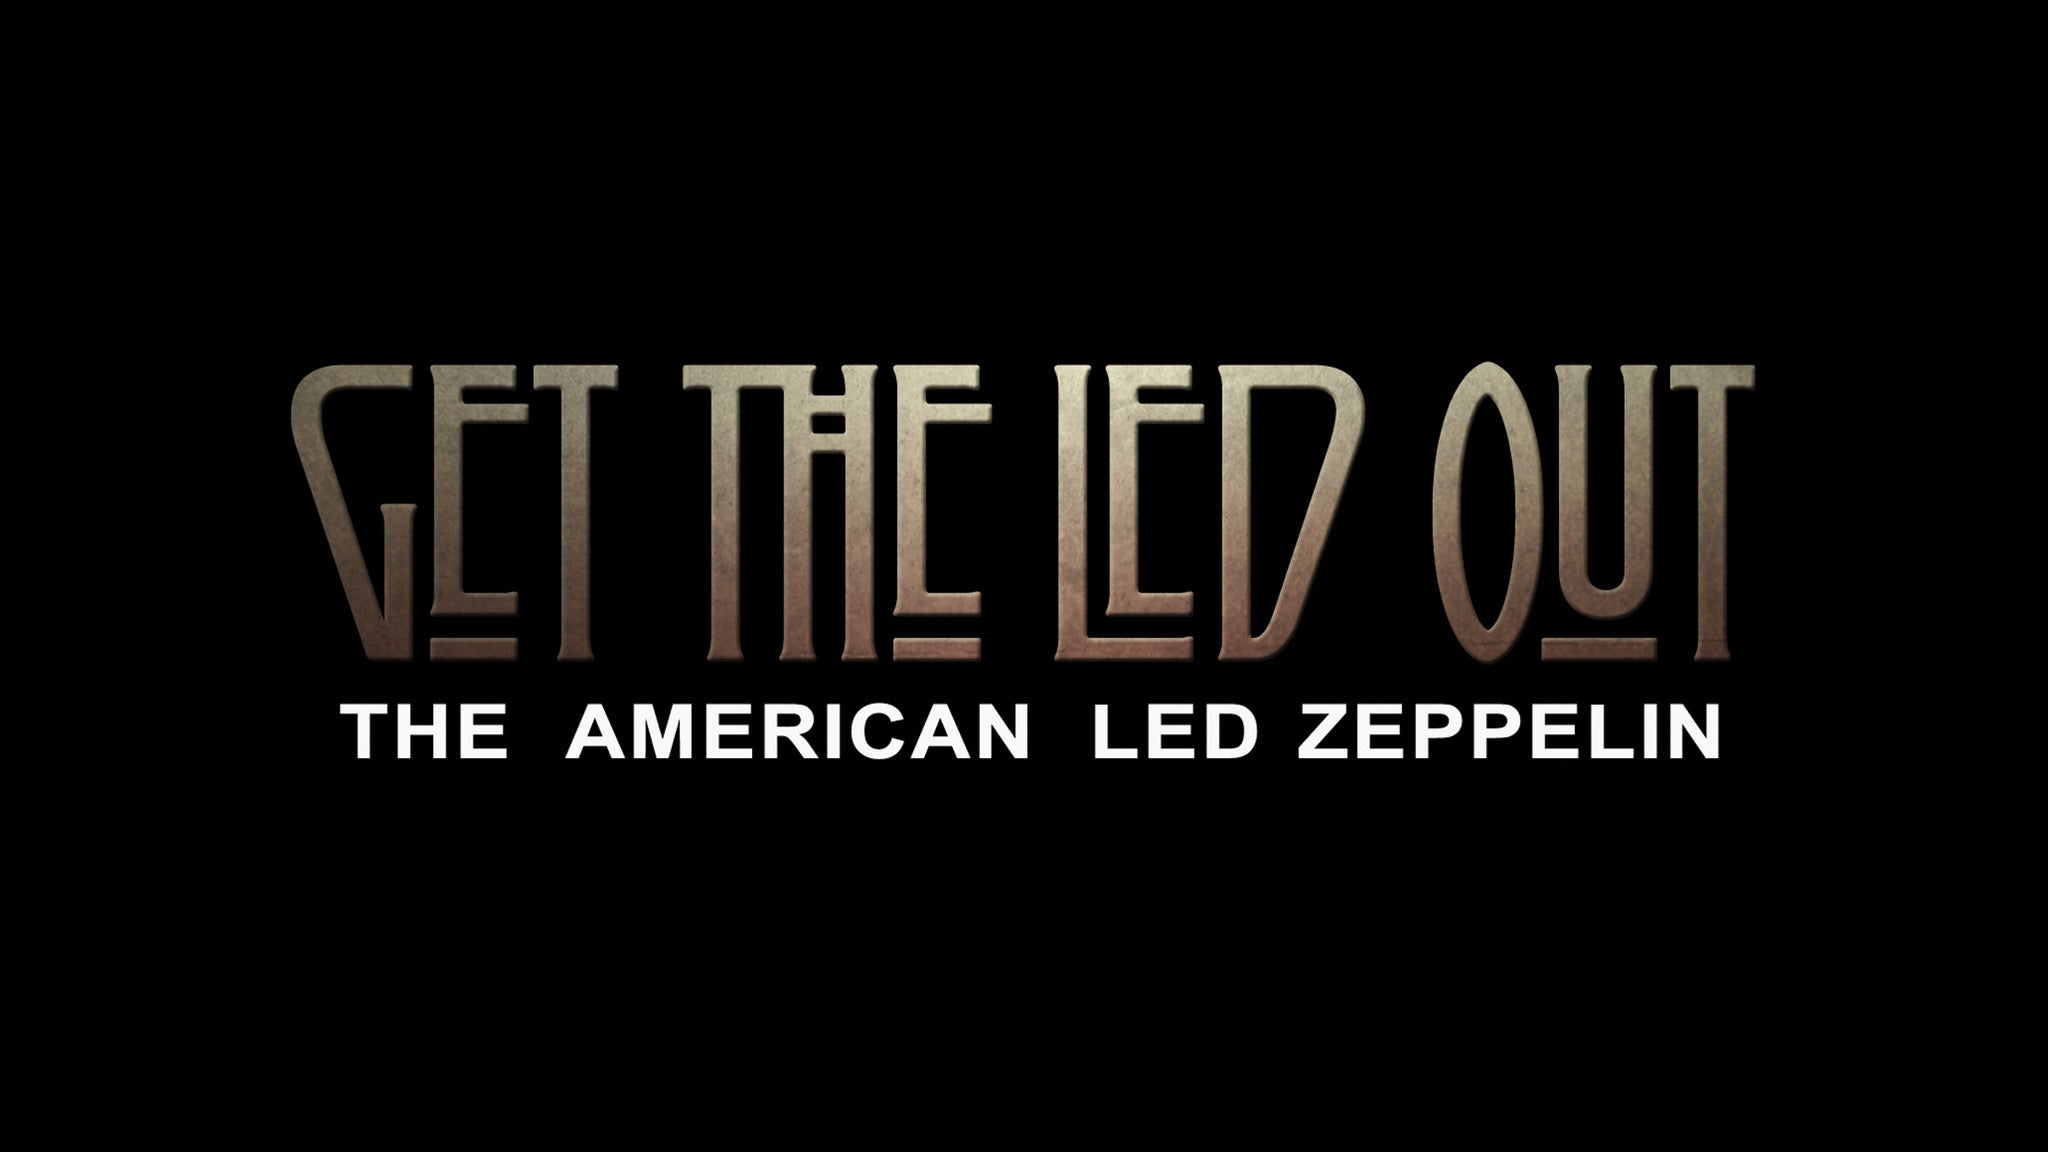 Get the Led Out at Nile Theater